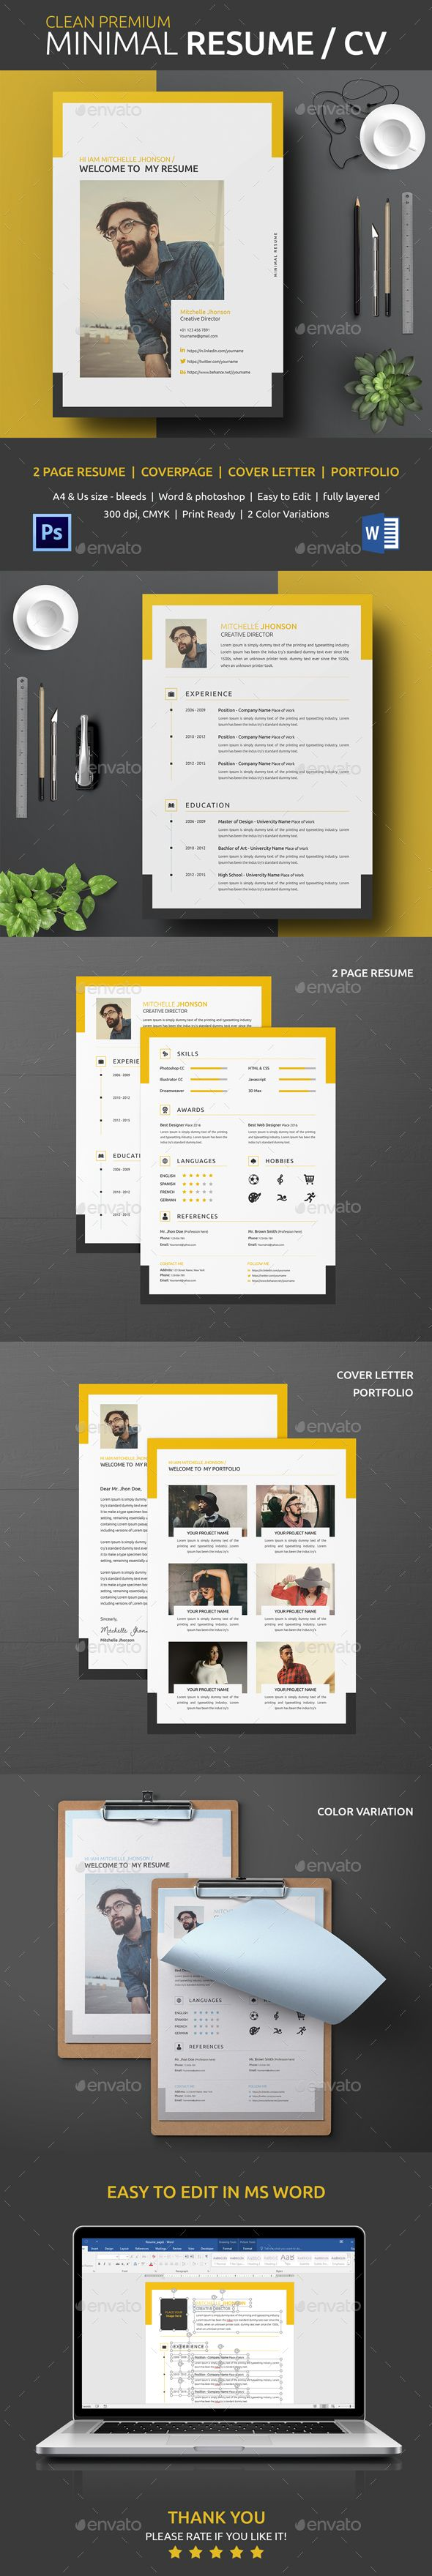 active words for resumes%0A TOP Professional Resume Templates Pinterest Buy Resume by themedevisers on  GraphicRiver Resume CV Template is a